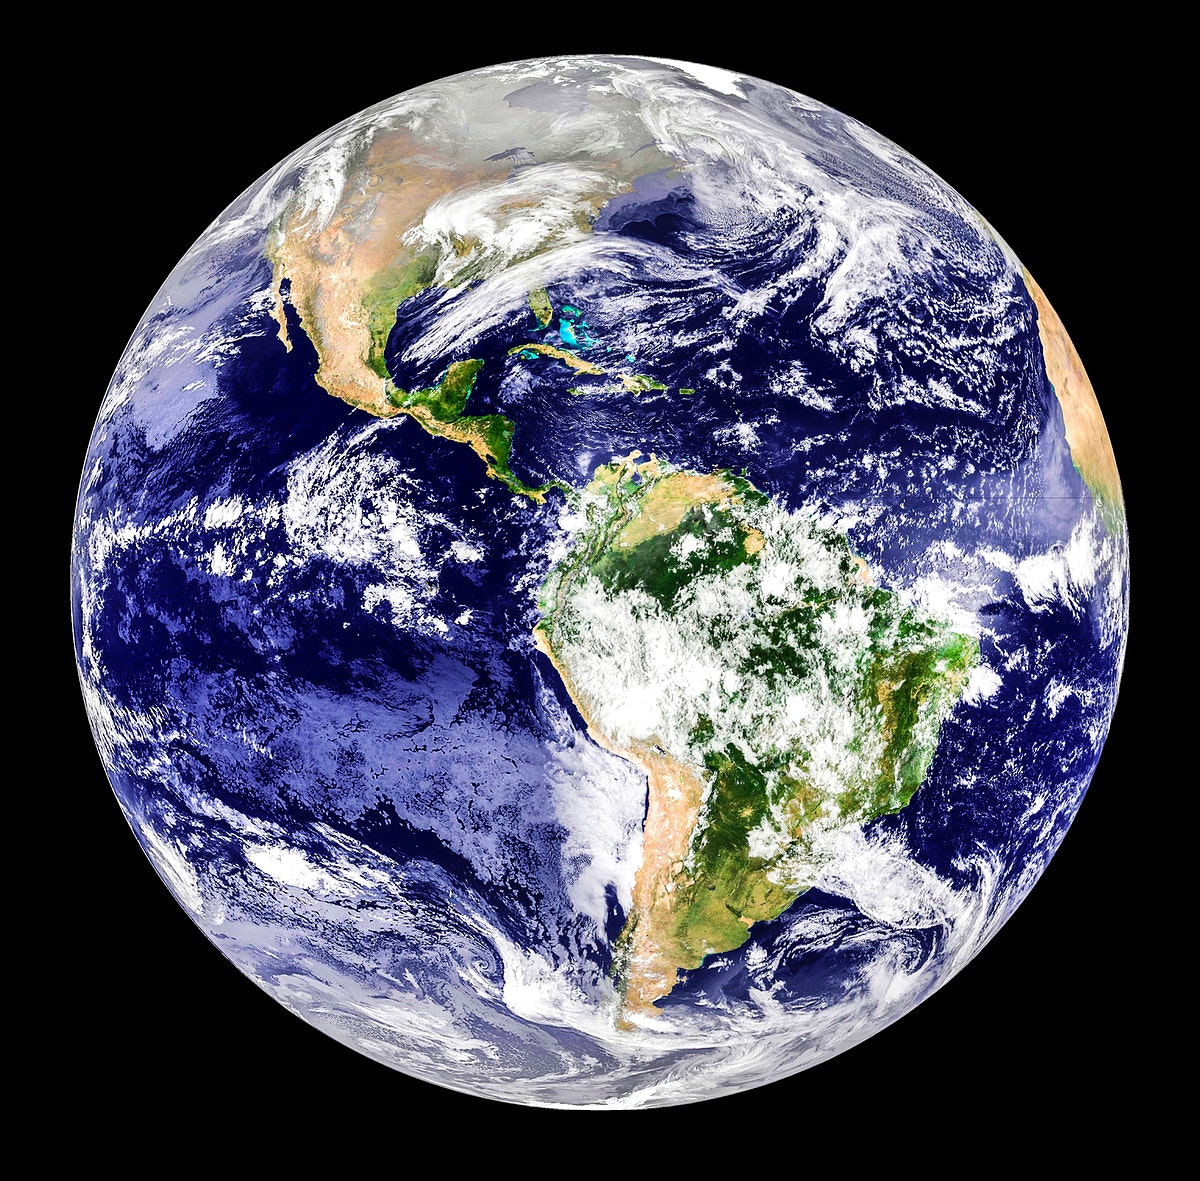 GOES 12 satellite image showing earth on March 25, 2010. Original from NASA. Digitally enhanced by rawpixel.